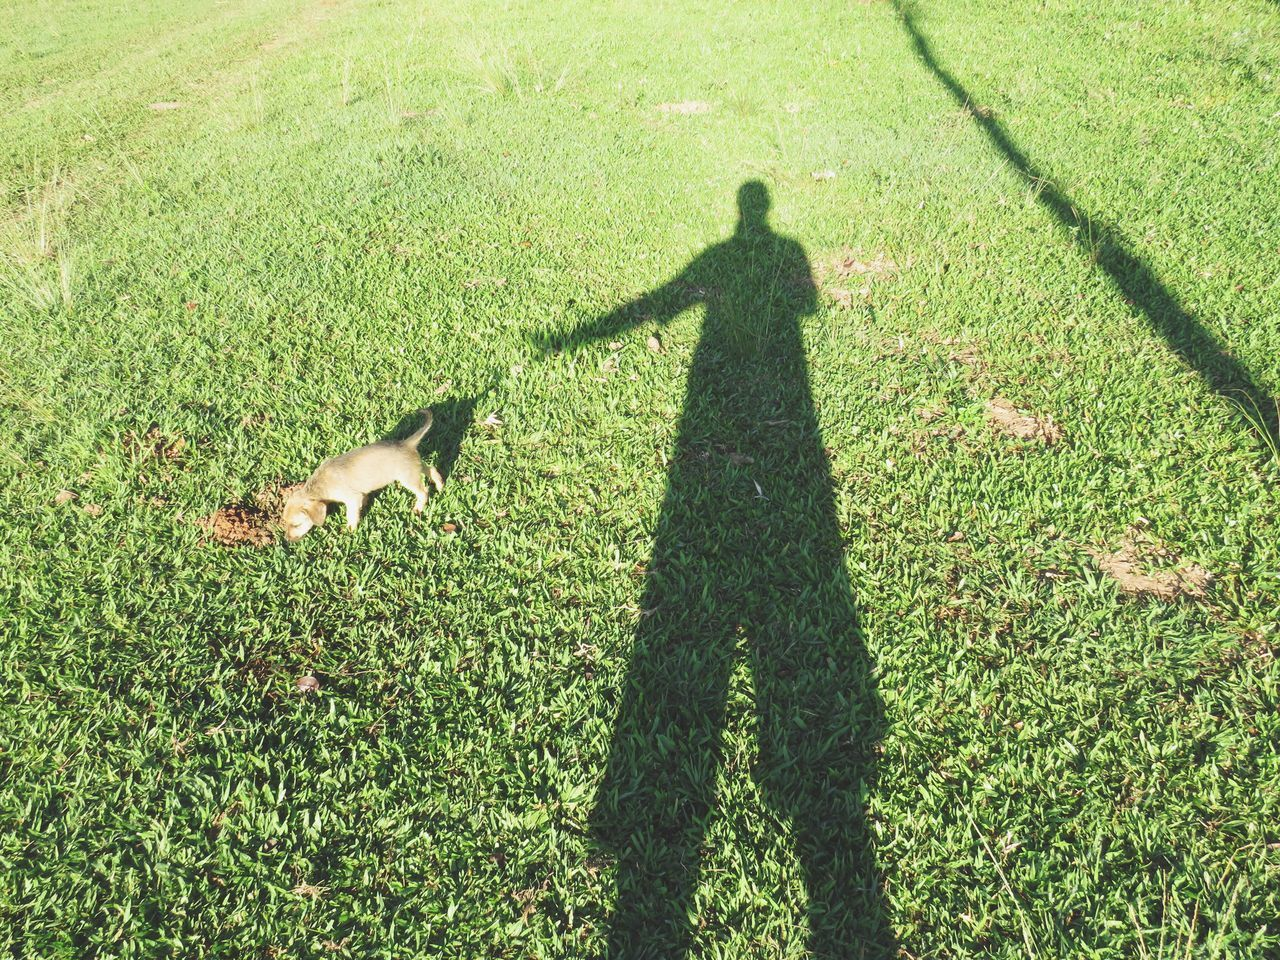 HIGH ANGLE VIEW OF MAN WITH DOG STANDING ON FIELD